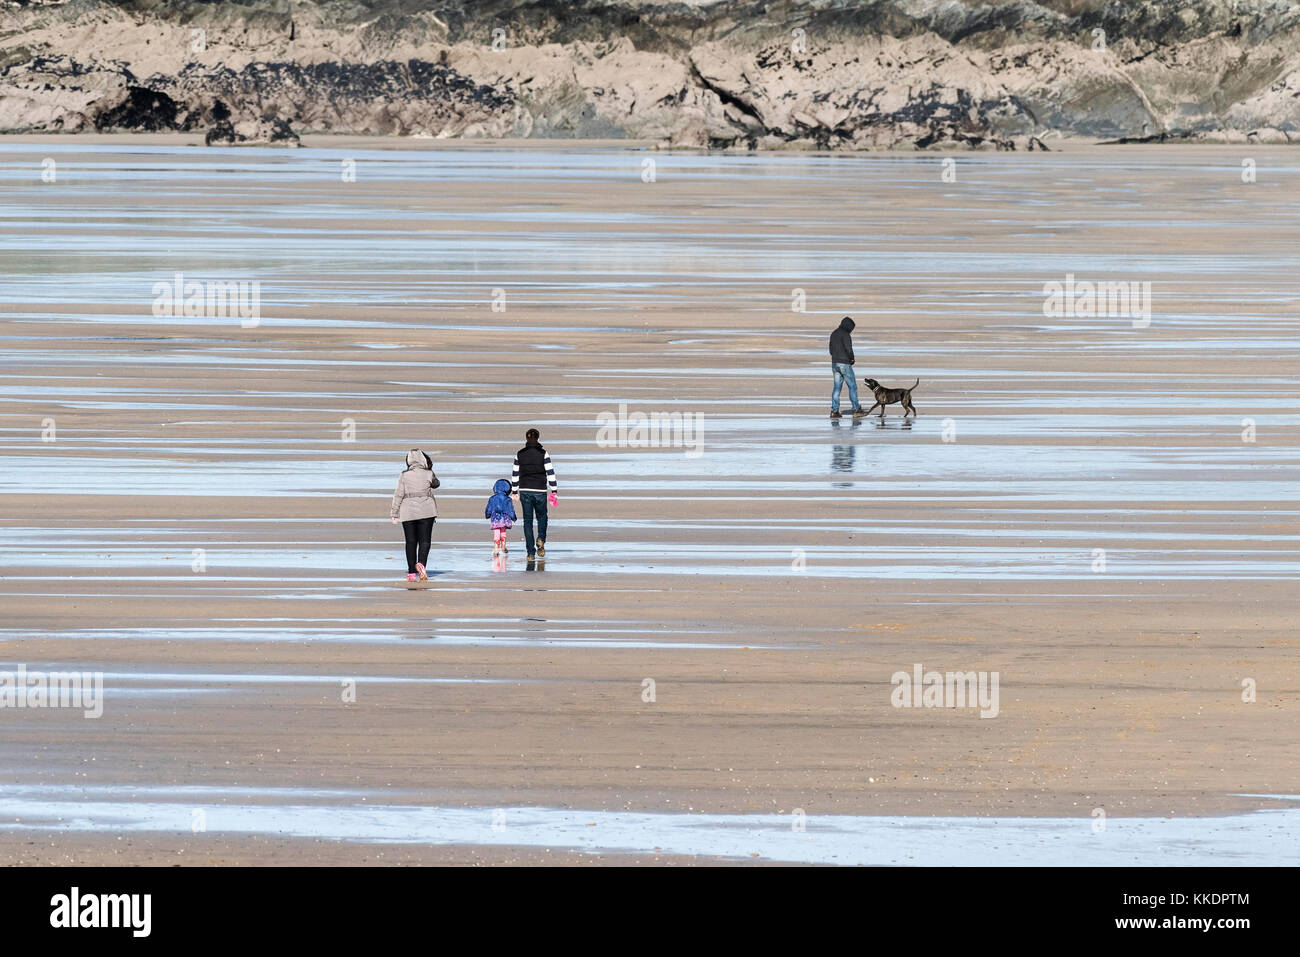 Fistral Beach Newquay - People walking across Fistral Beach at low tide Newquay Cornwall. - Stock Image